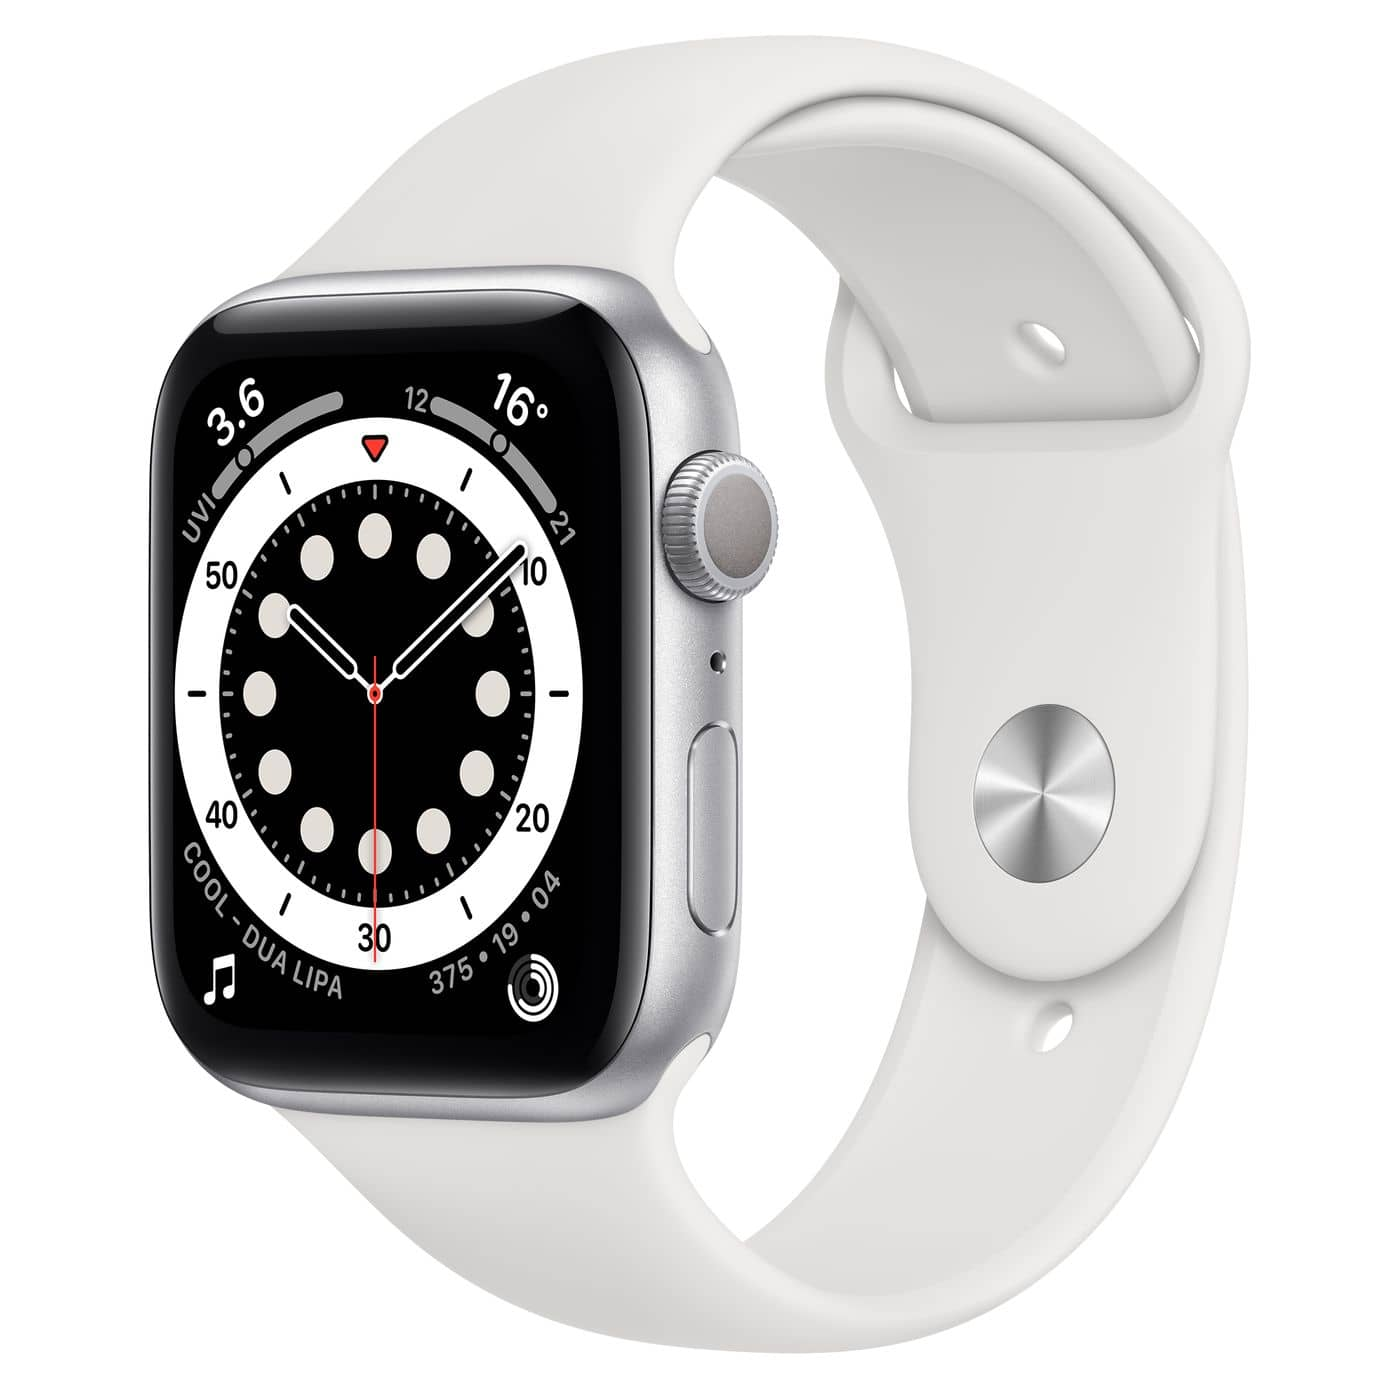 Apple Watch Series 6 wit review